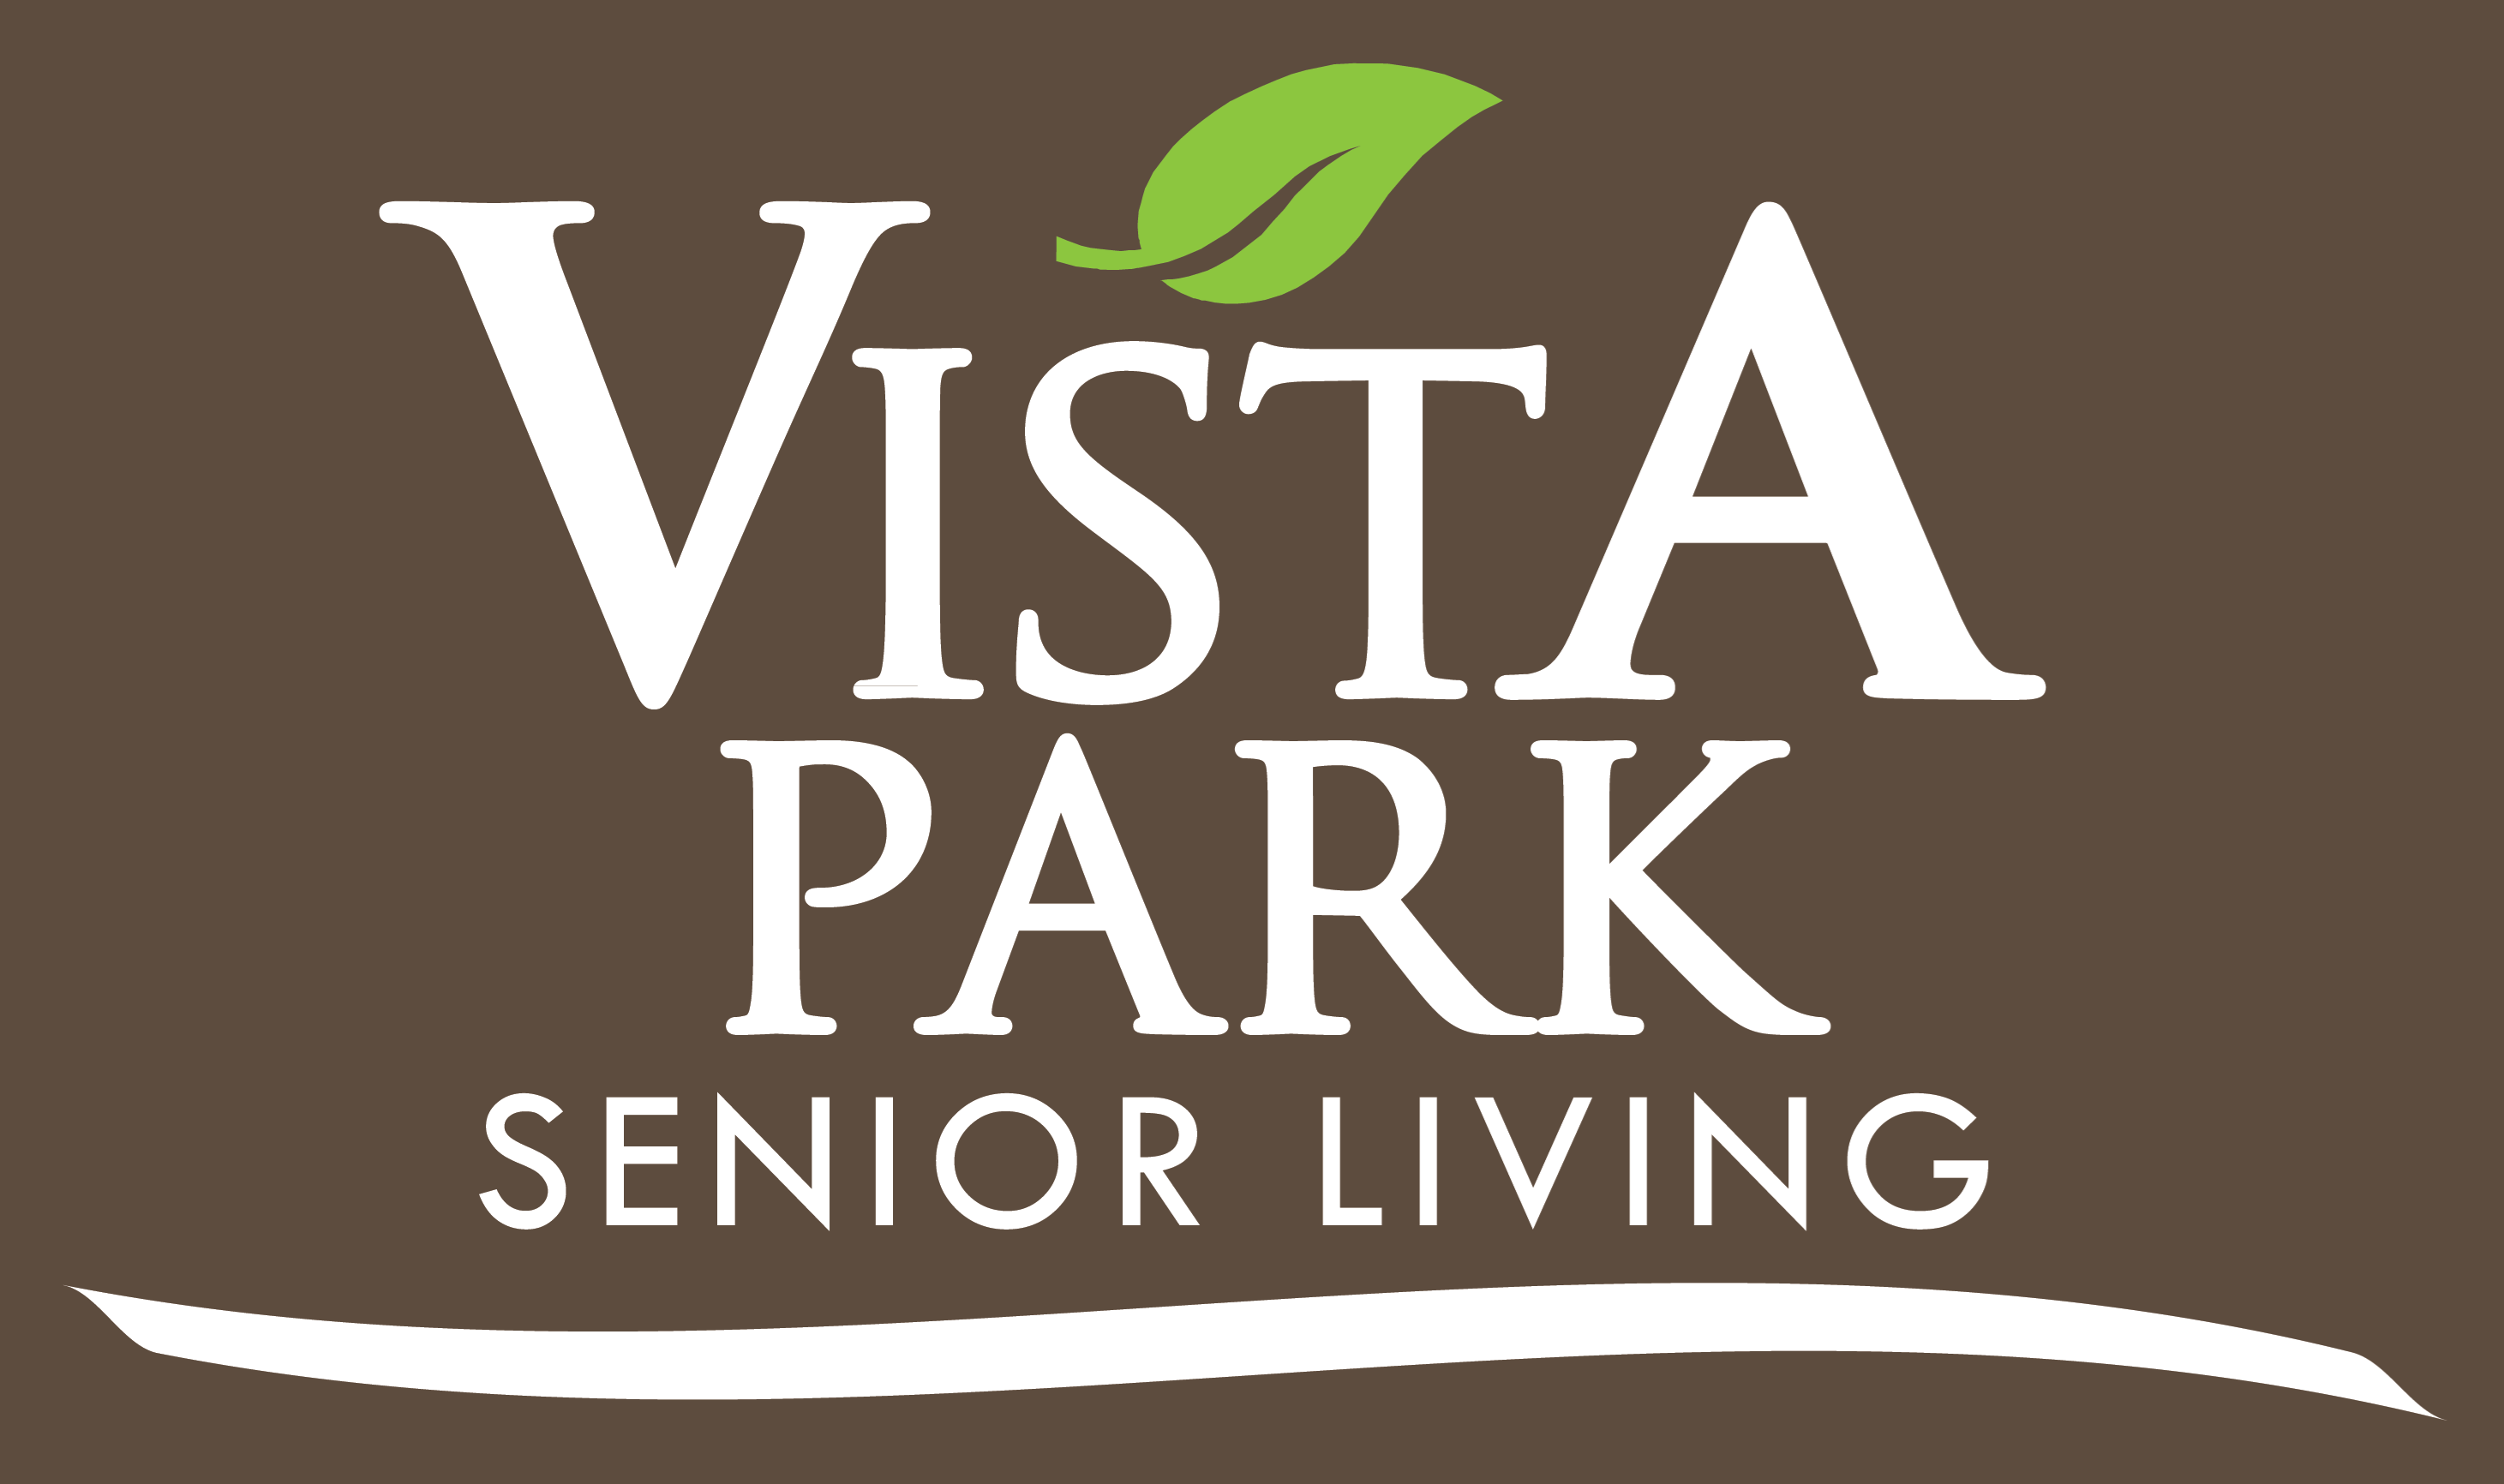 Vista Park Senior Living Apartments for rent in Brooksville, FL. Make this community your new home or visit other Concord Rents communities at ConcordRents.com. Logo